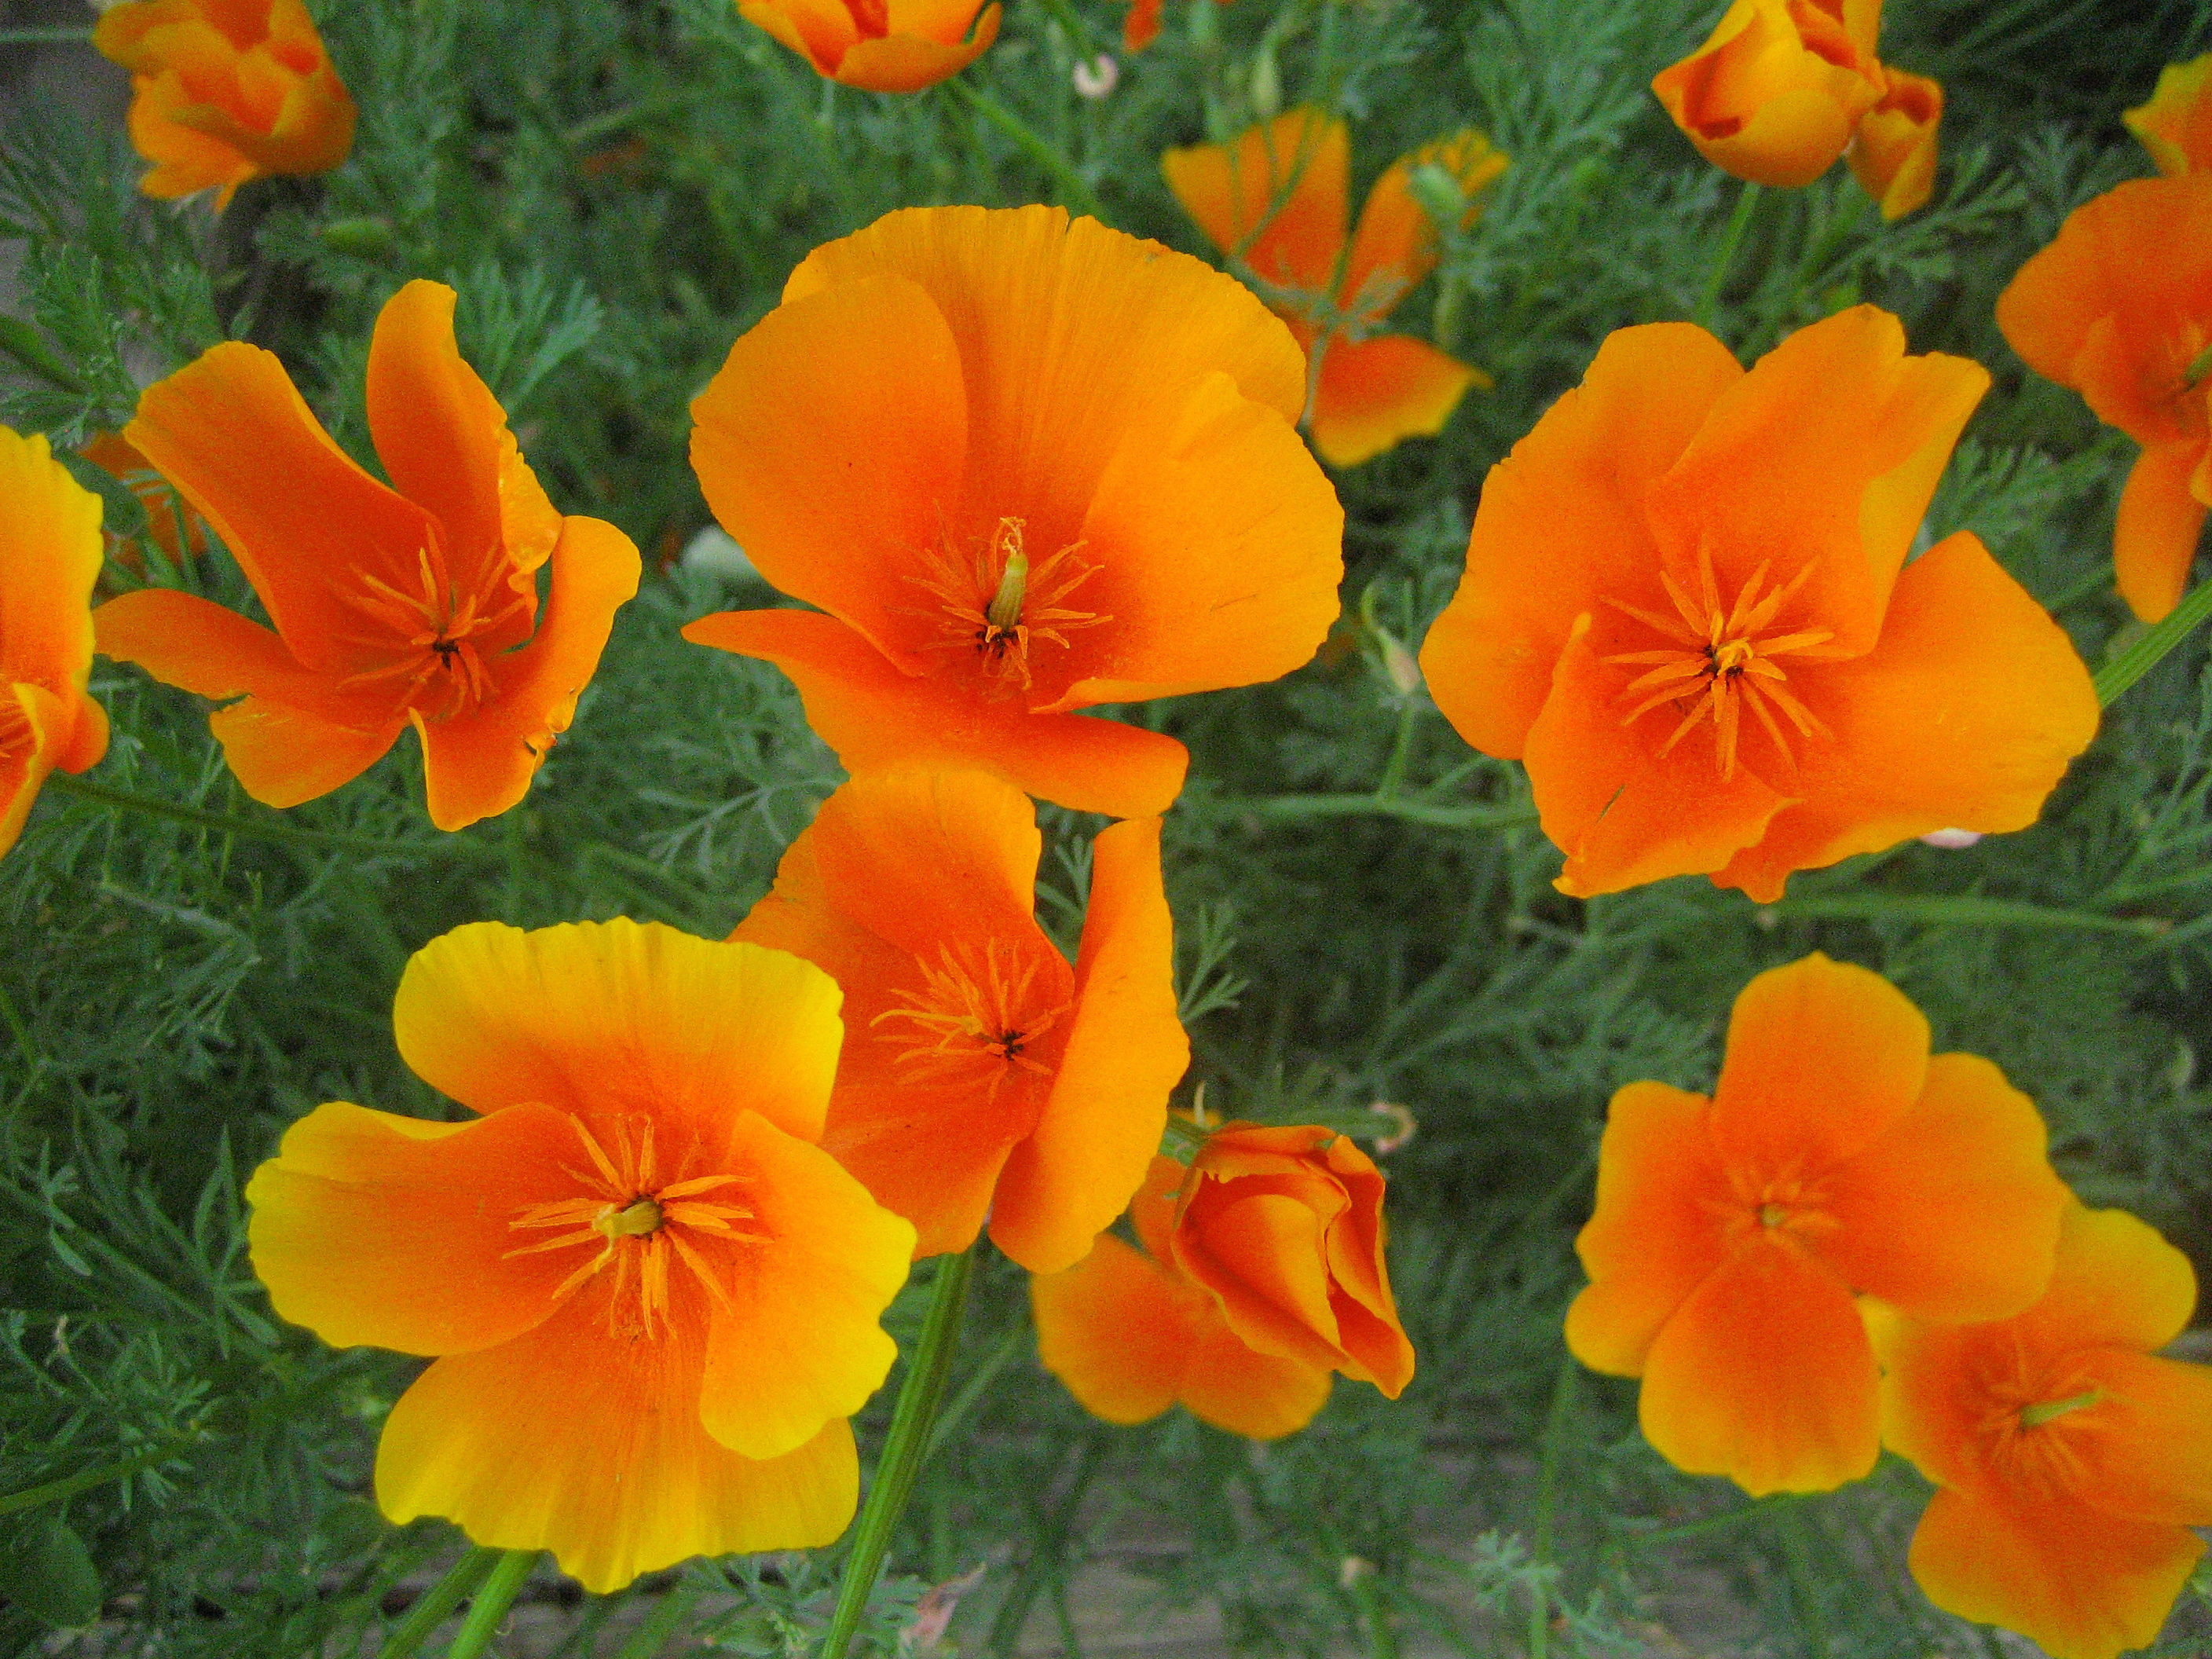 Poppy killers green schoolyard california poppies from the wikipedia commons files mightylinksfo